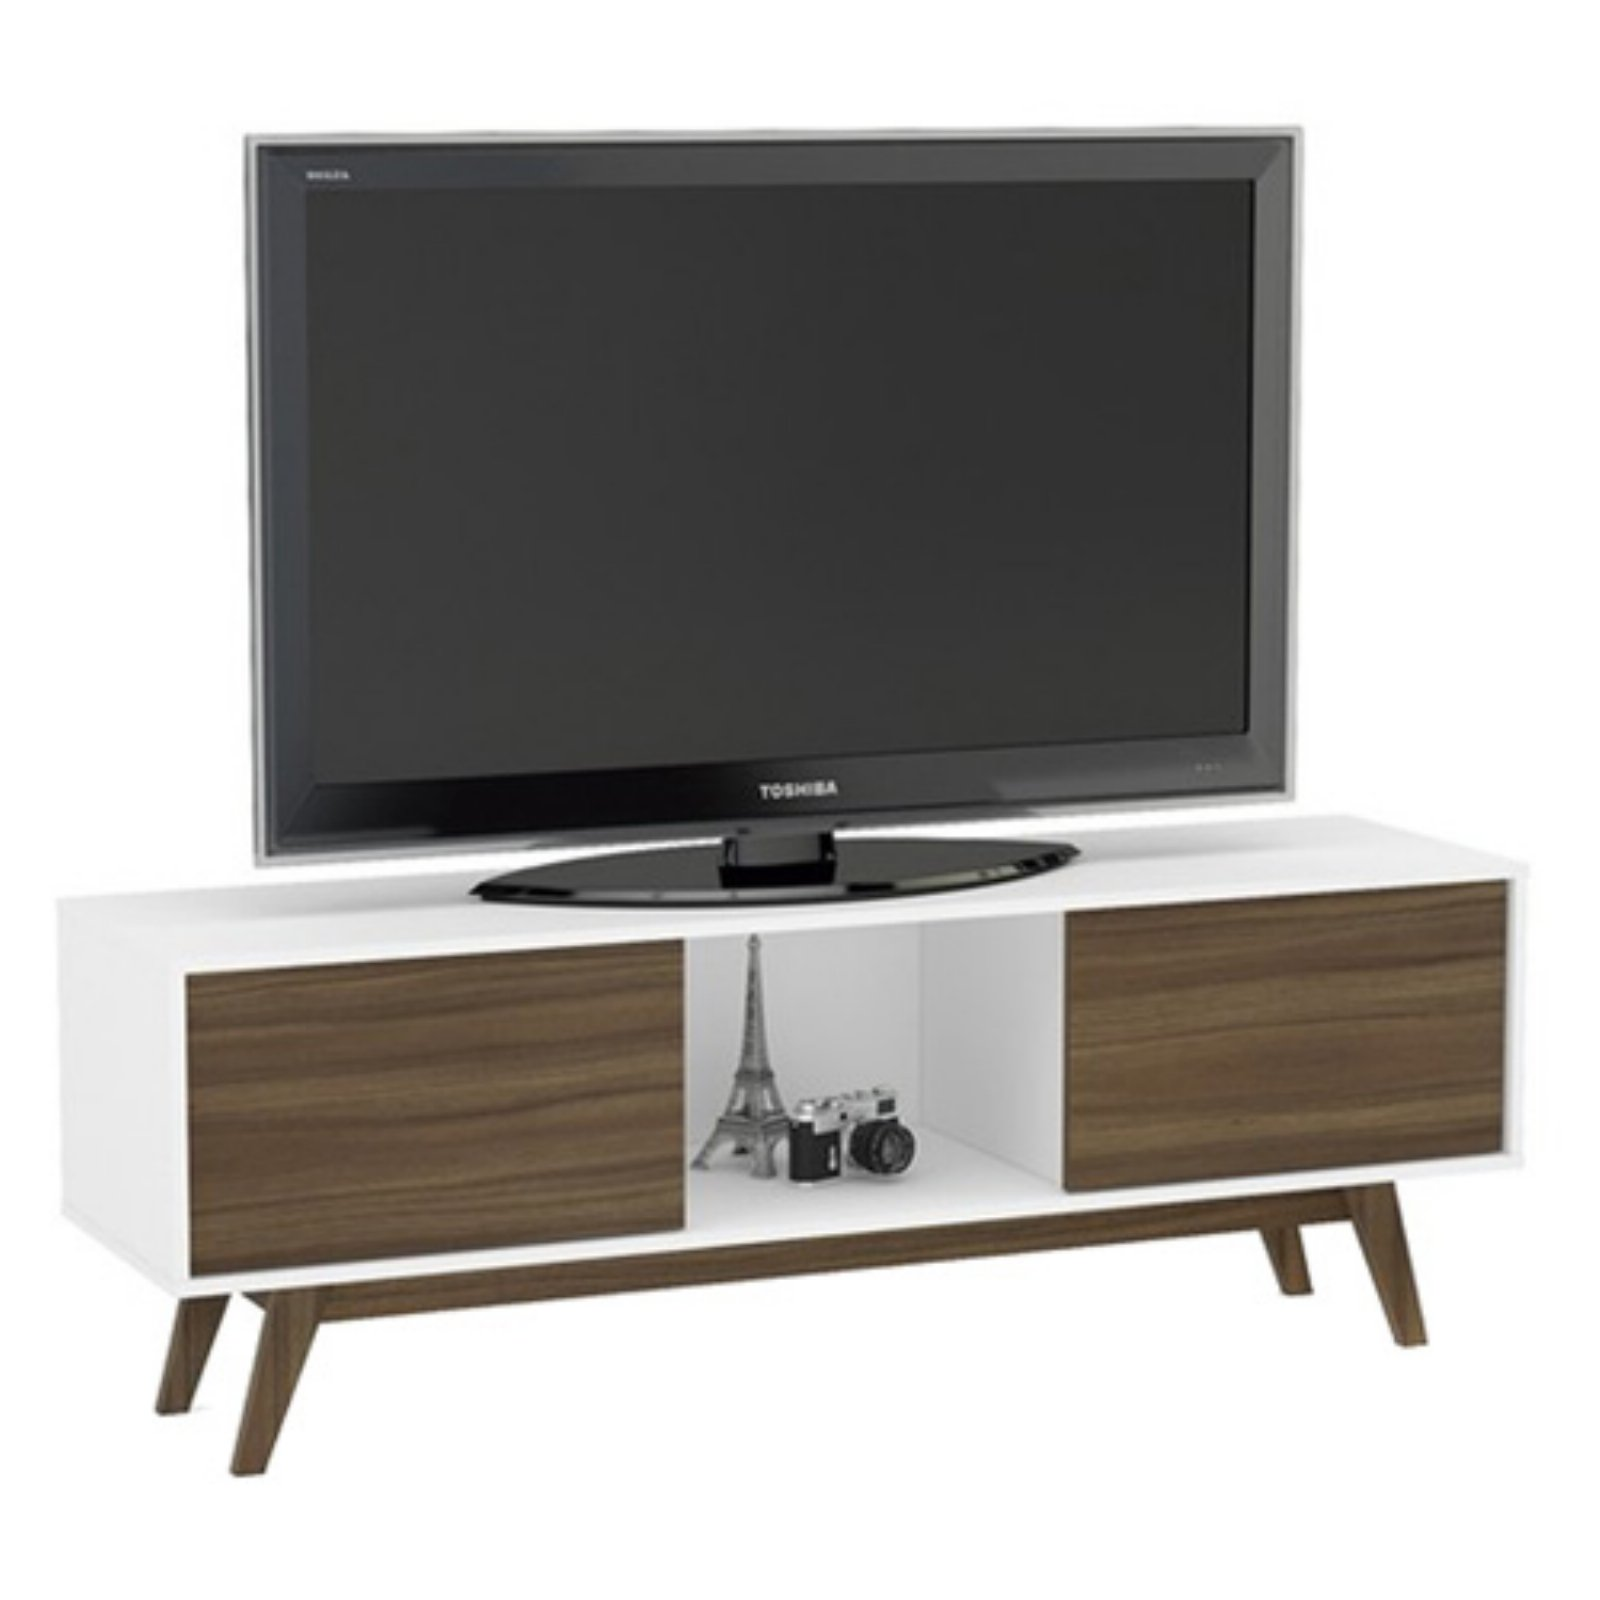 "Boahaus Contempoary TV Stand up to 60"", White - Walnut, 2 closed compartments"